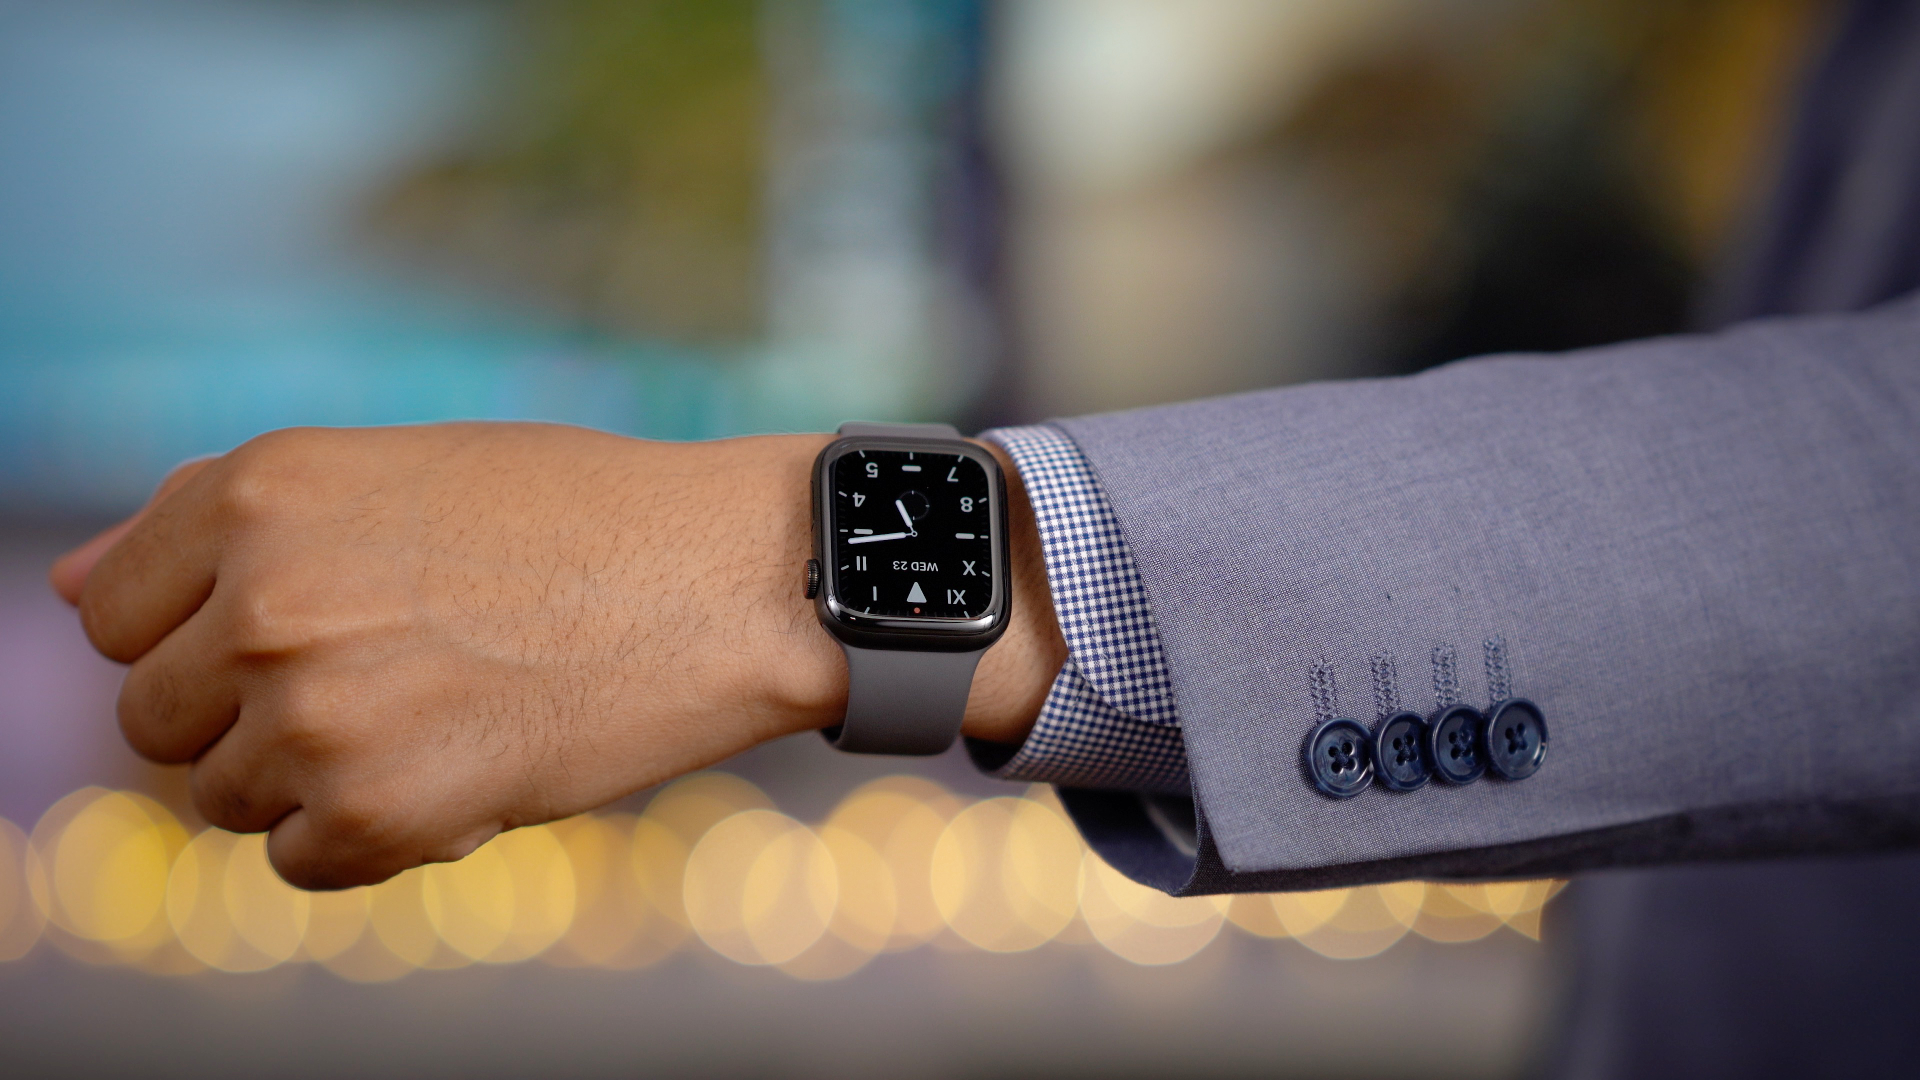 Review: Apple Watch Series 5 always-on display is a big improvement, but it comes at a cost [Video]